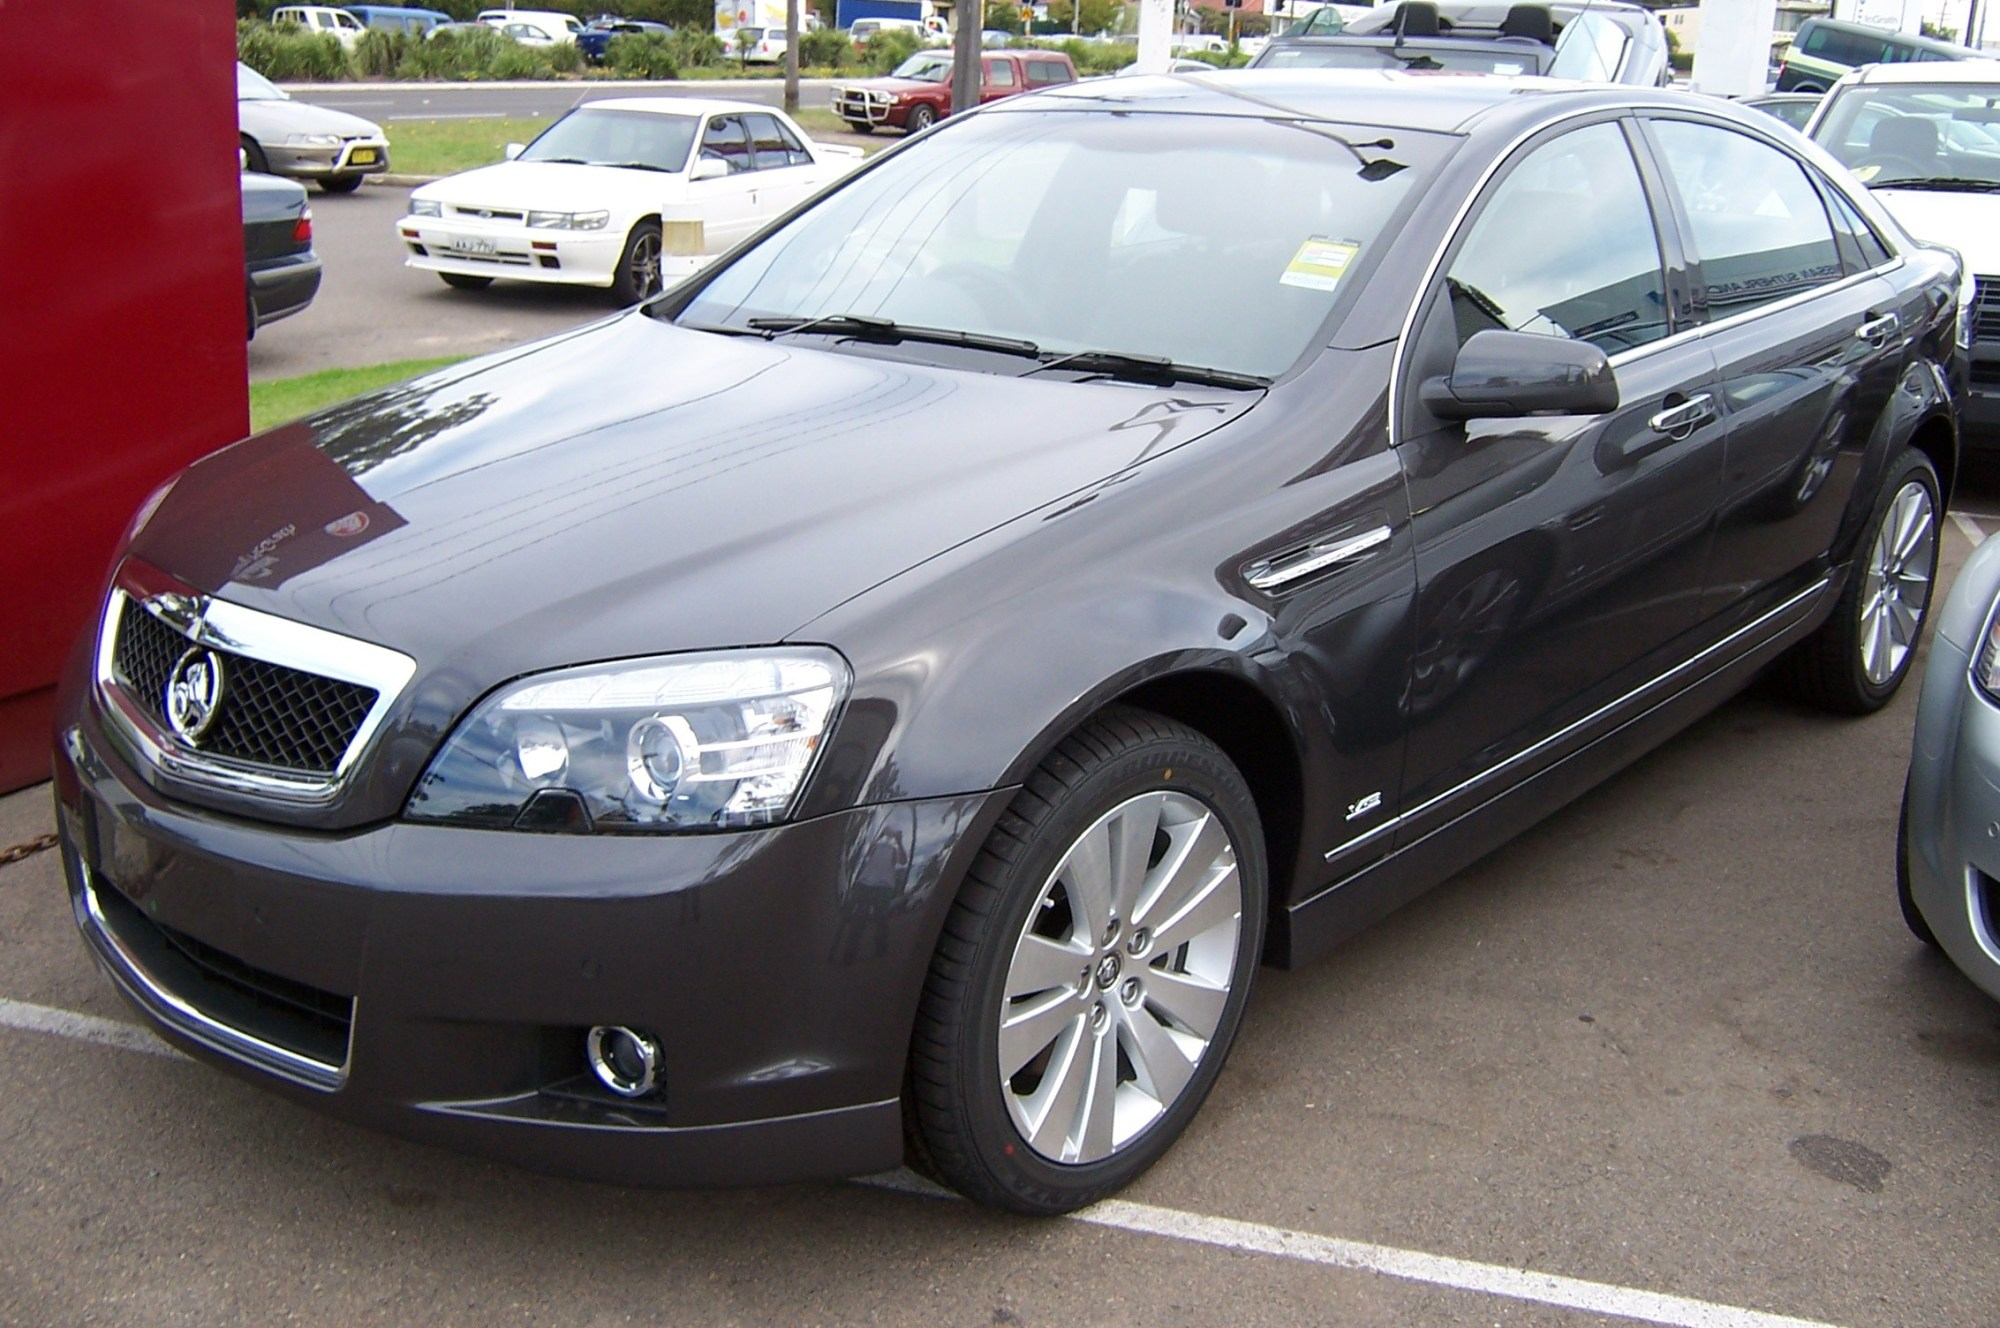 hight resolution of 2013 chevy impala s